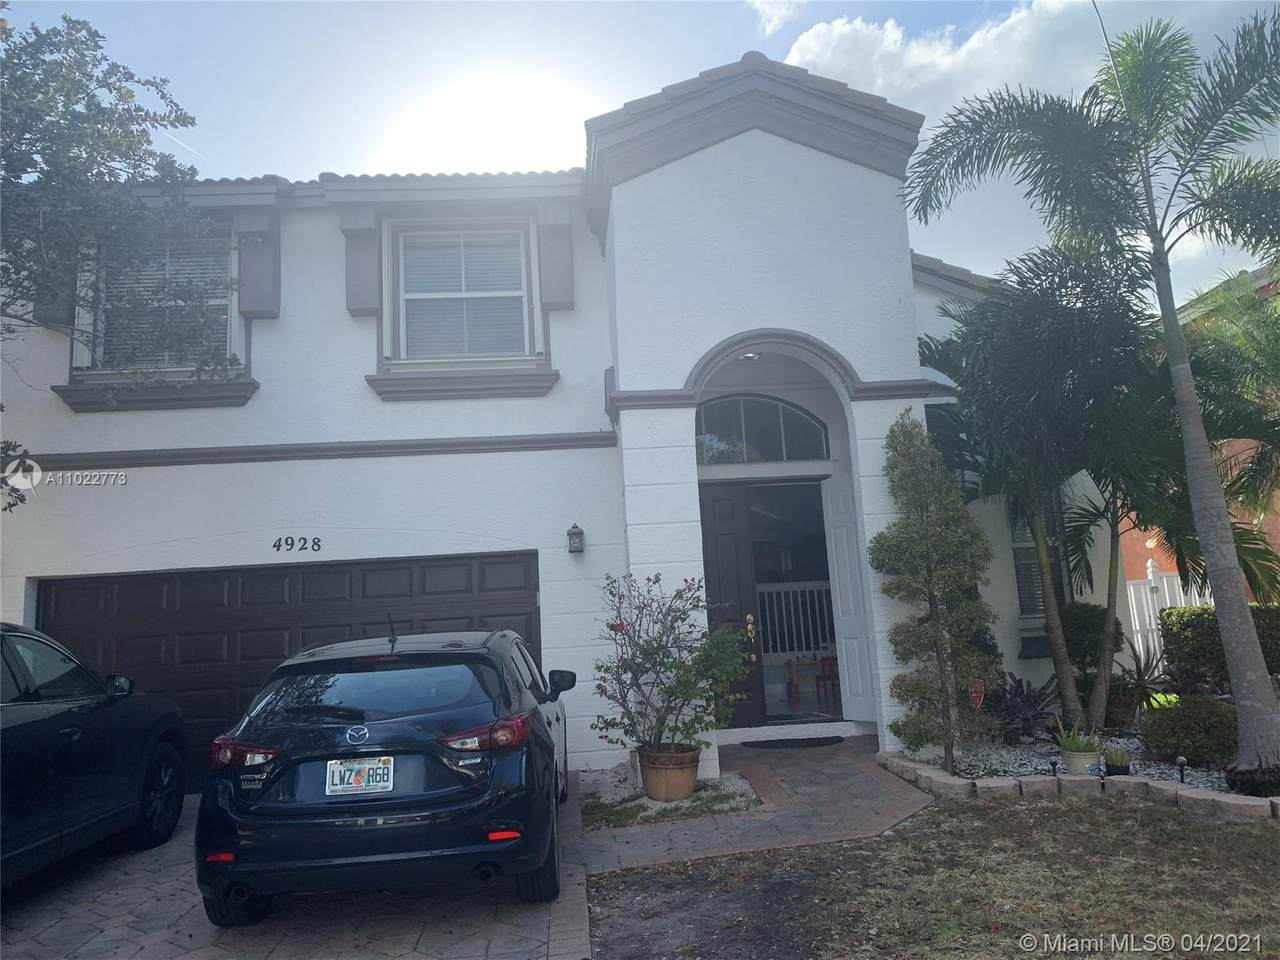 4928 165th Ave - Photo 1